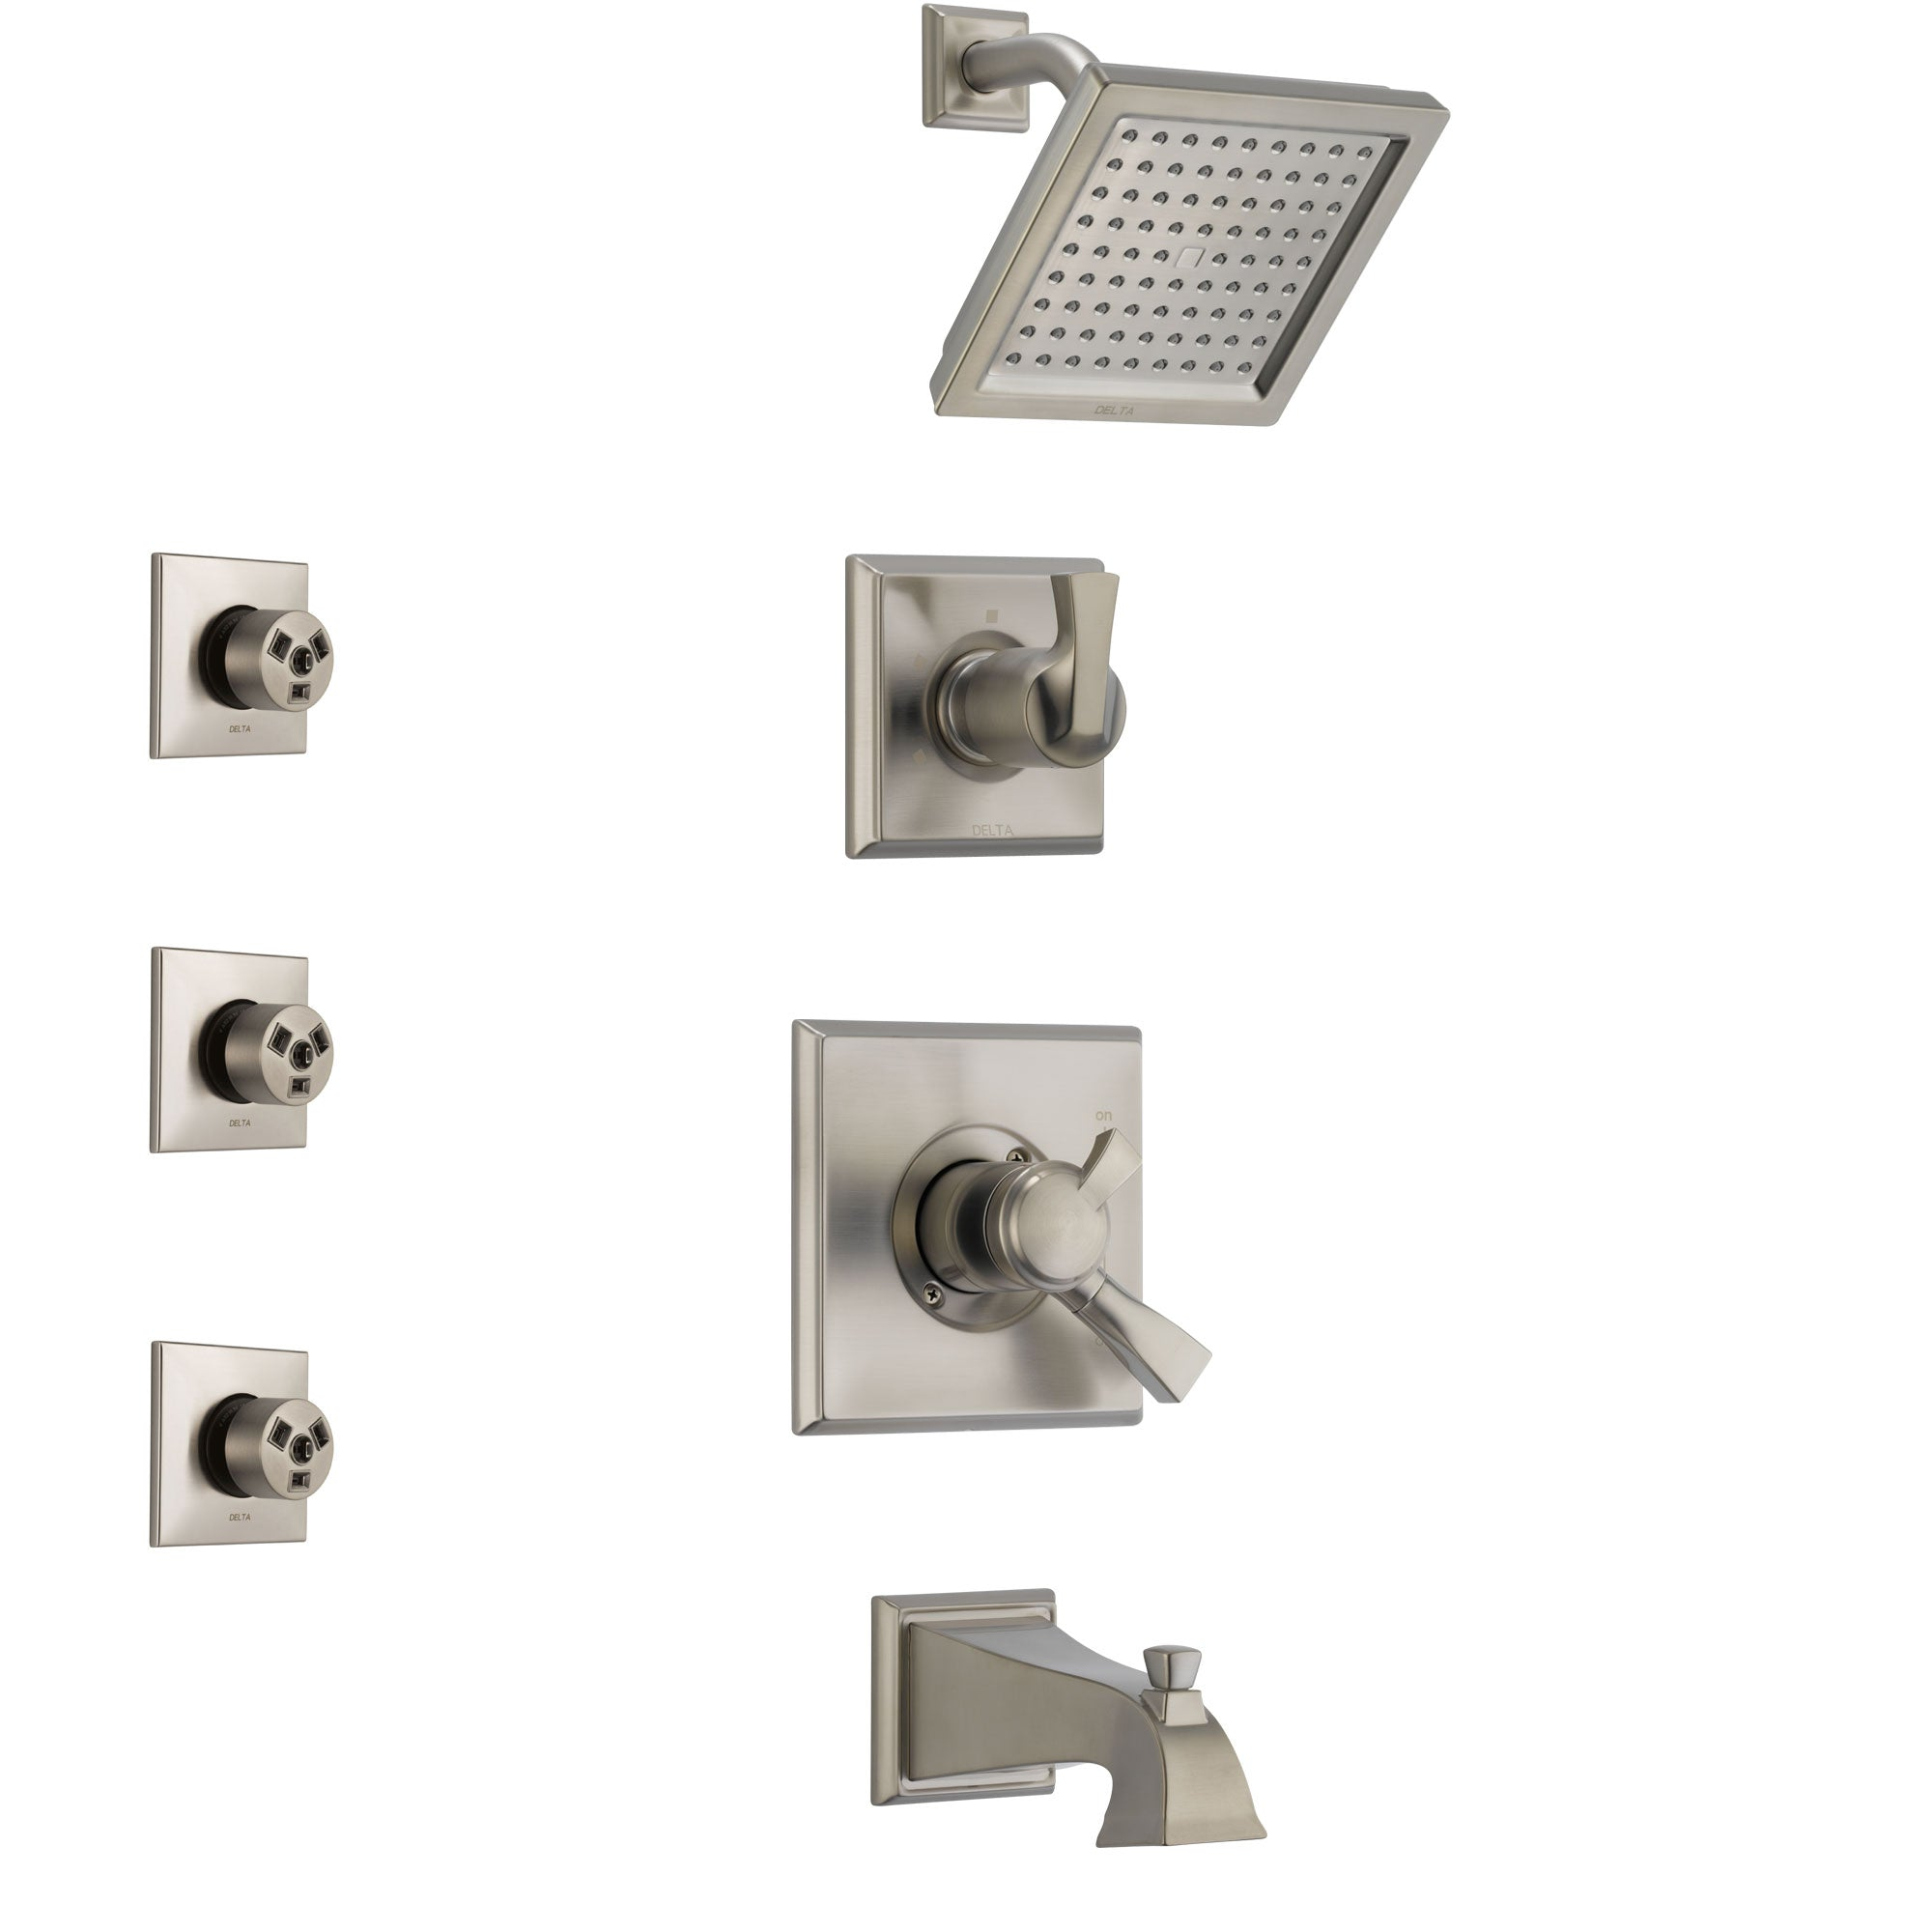 Delta Dryden Stainless Steel Finish Tub and Shower System with Dual Control Handle, 3-Setting Diverter, Showerhead, and 3 Body Sprays SS174511SS2